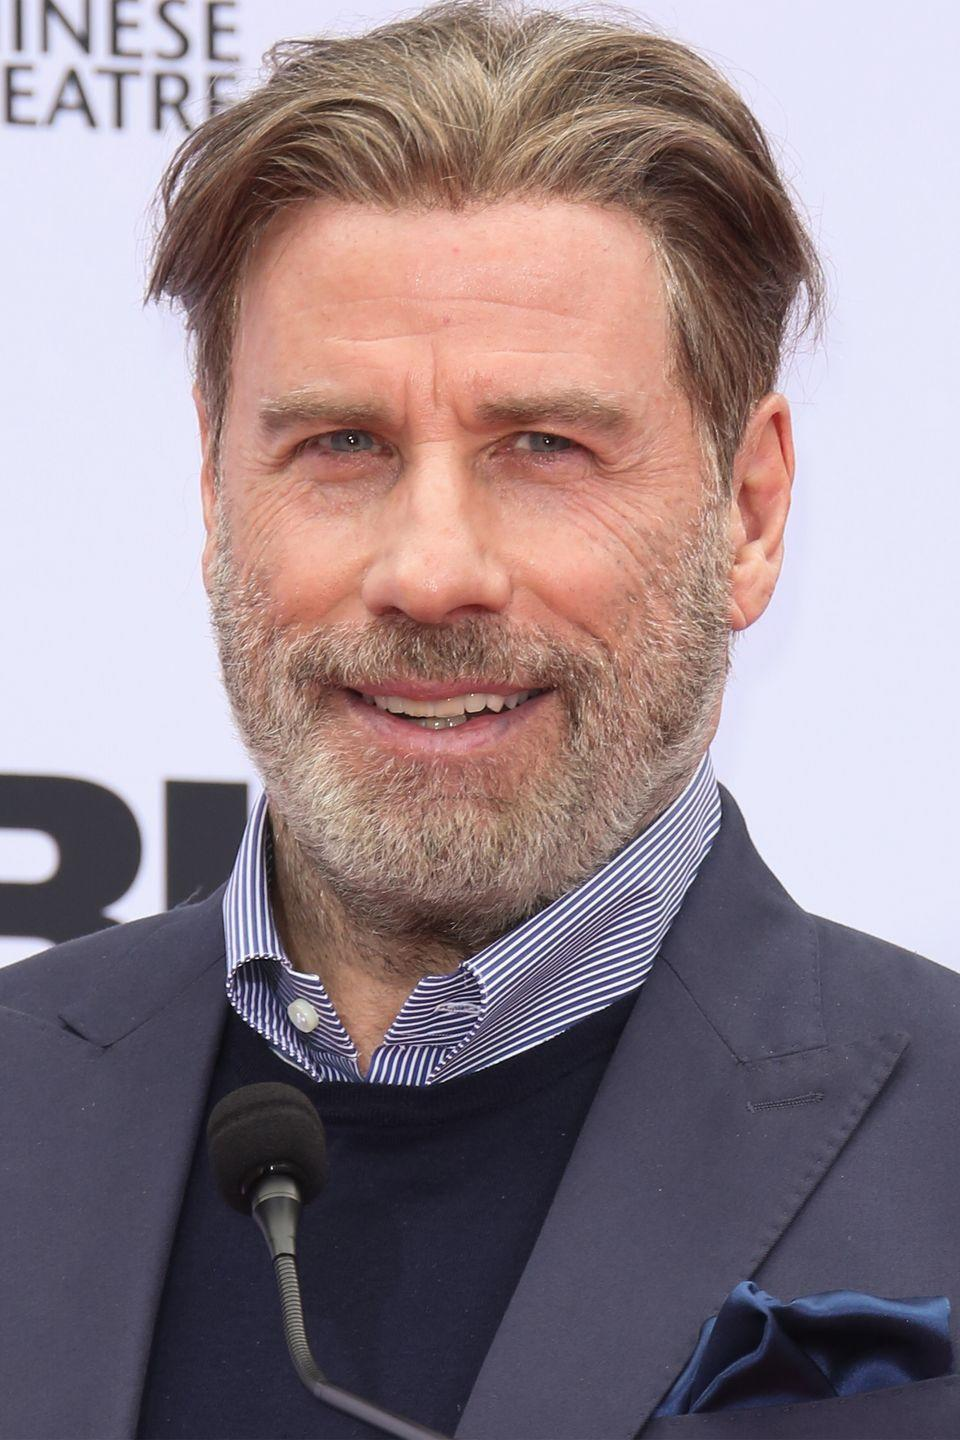 """<p>Travolta <a href=""""http://www.businessinsider.com/celebrity-high-school-dropouts-2012-4#paris-hilton-3"""" rel=""""nofollow noopener"""" target=""""_blank"""" data-ylk=""""slk:dropped out"""" class=""""link rapid-noclick-resp"""">dropped out</a> of school at 16 to hit the acting circuit. </p>"""